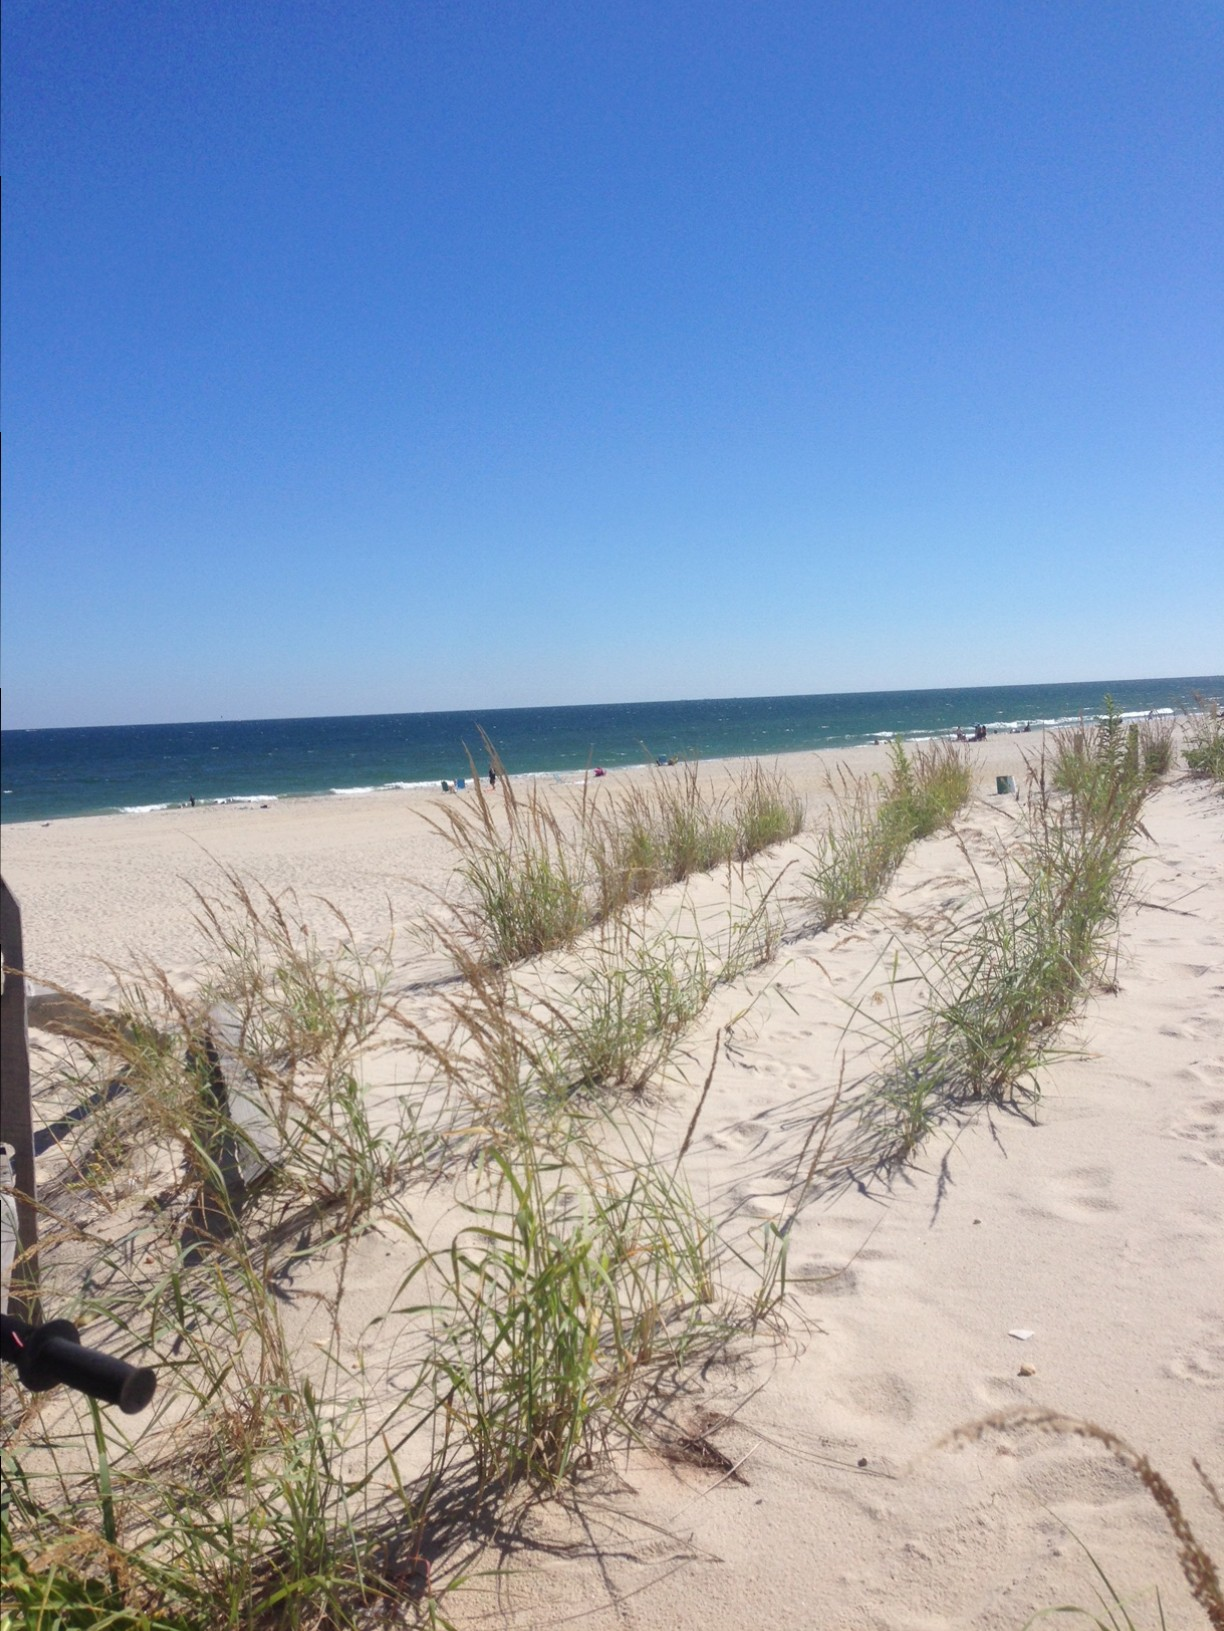 Dunes built by the U.S. Army Corps of Engineers in Long Beach Island. (Photo: Daniel Nee)